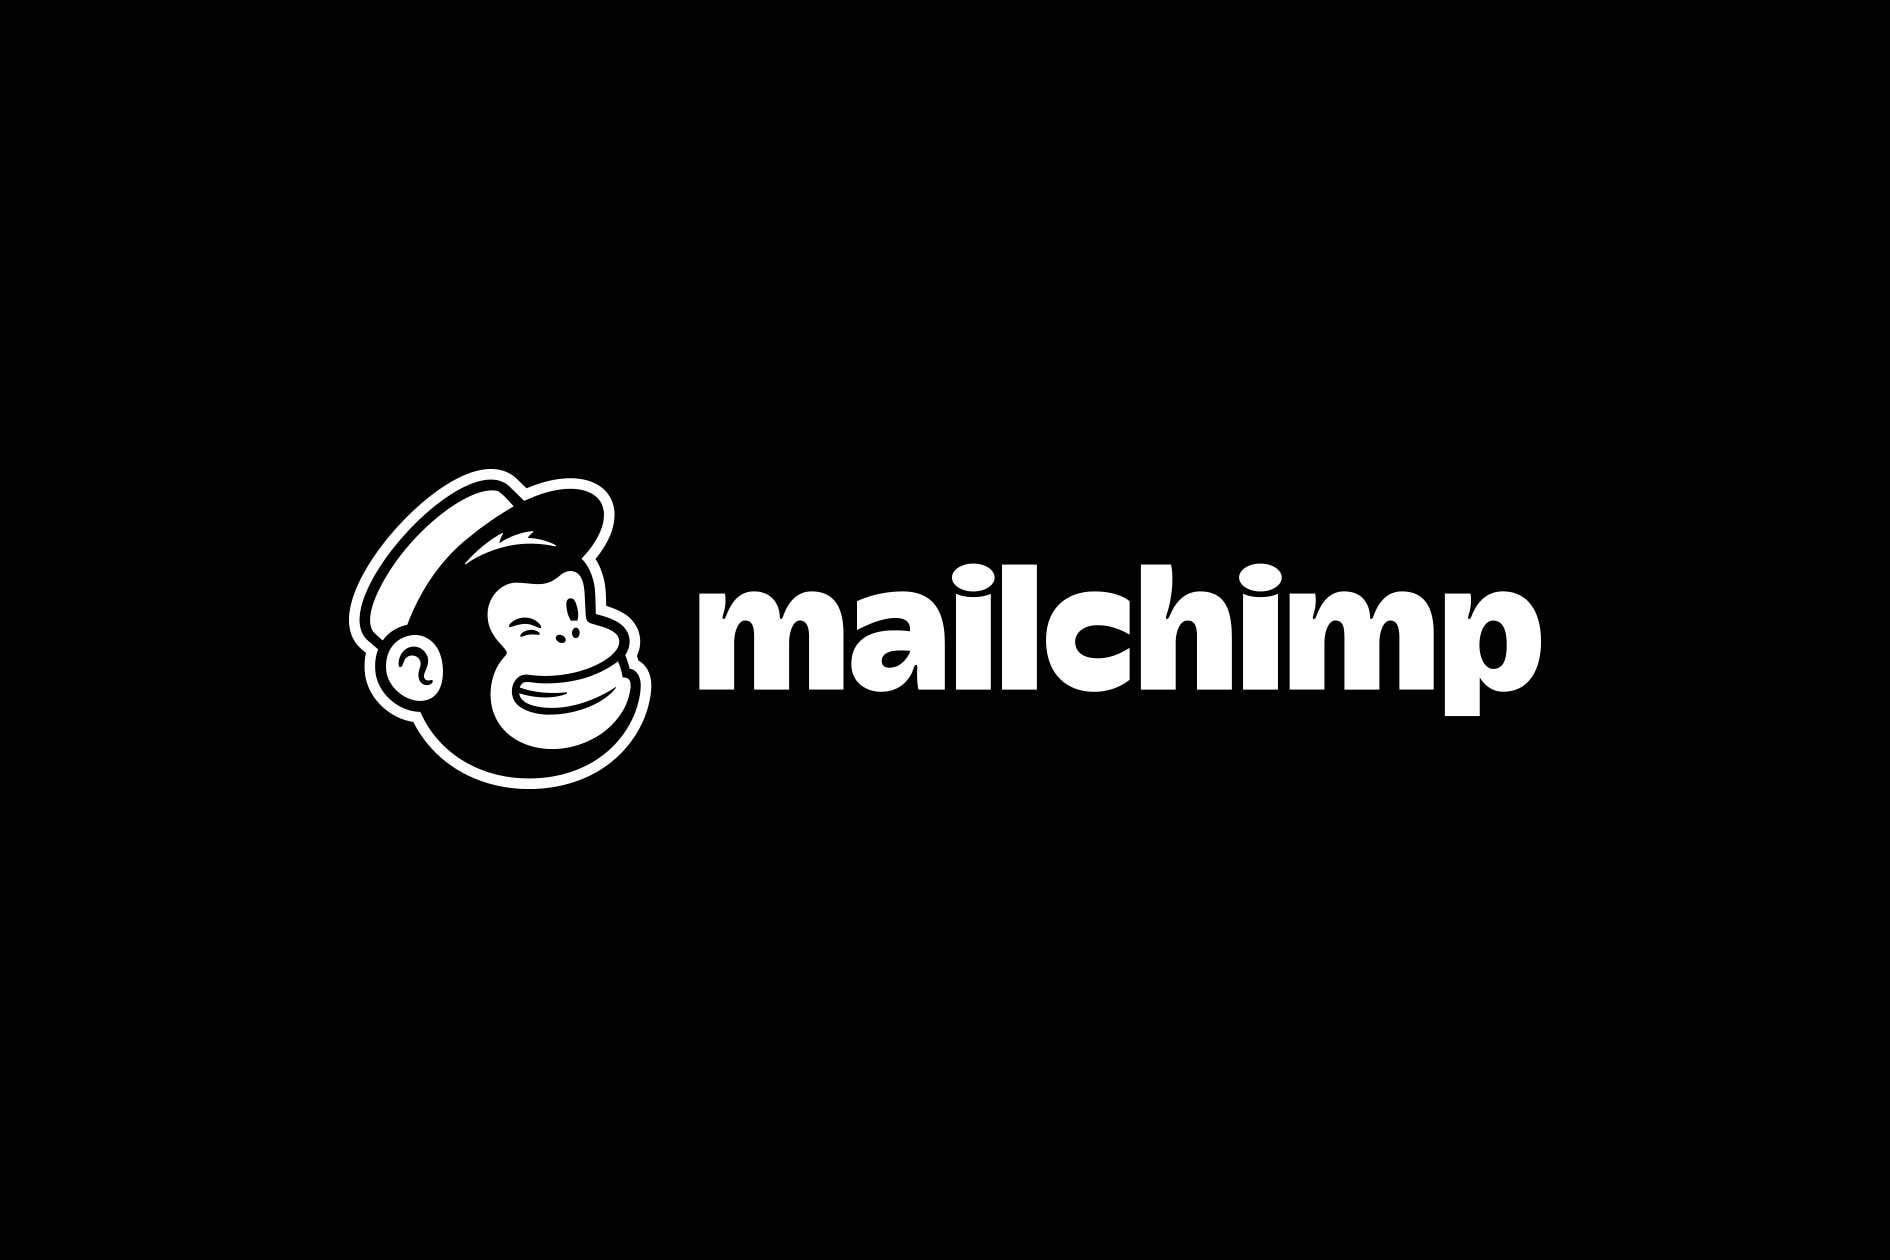 mailchimp logo graphic design